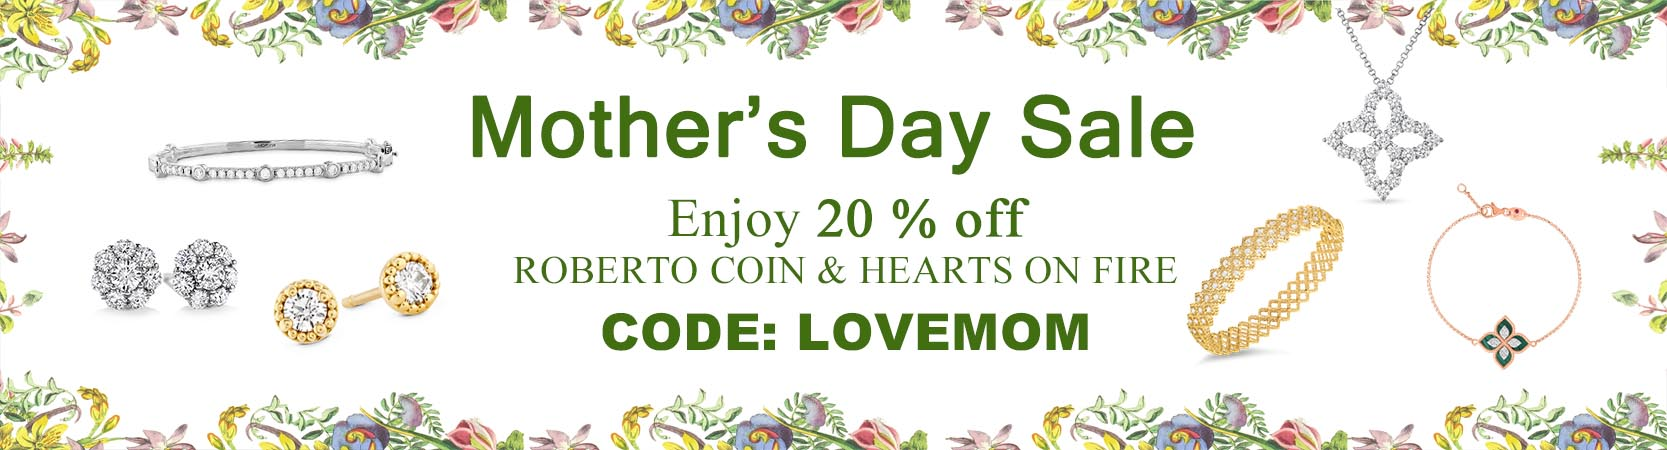 Mother's Day Sale at Manfredi Jewels